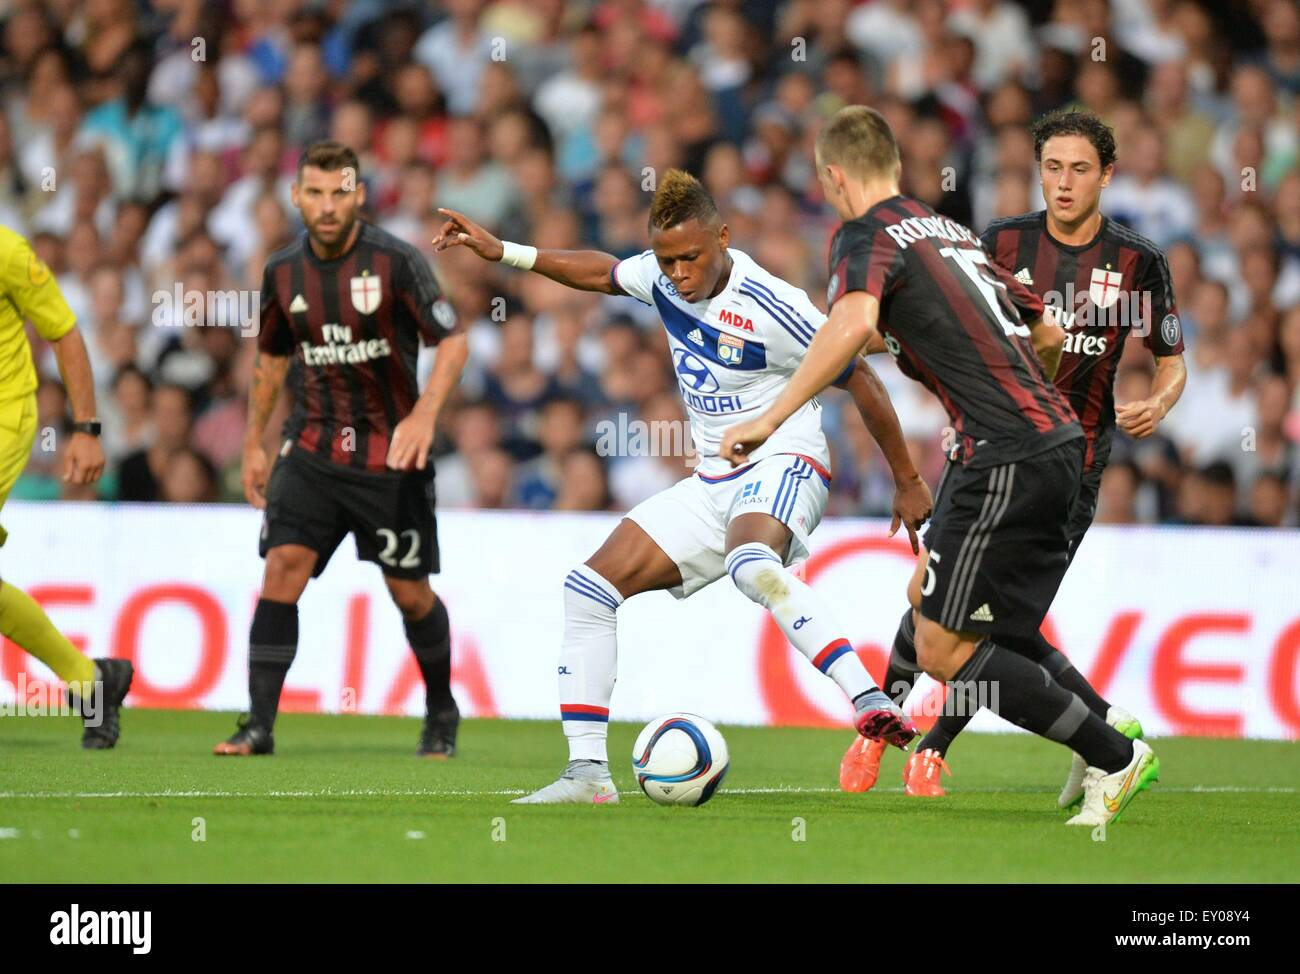 18.07.2015. stade de gerland, Lyon, France, Preseason football friendly, Lyon versus AC Milan. Clinton Njie (ol) Stock Photo